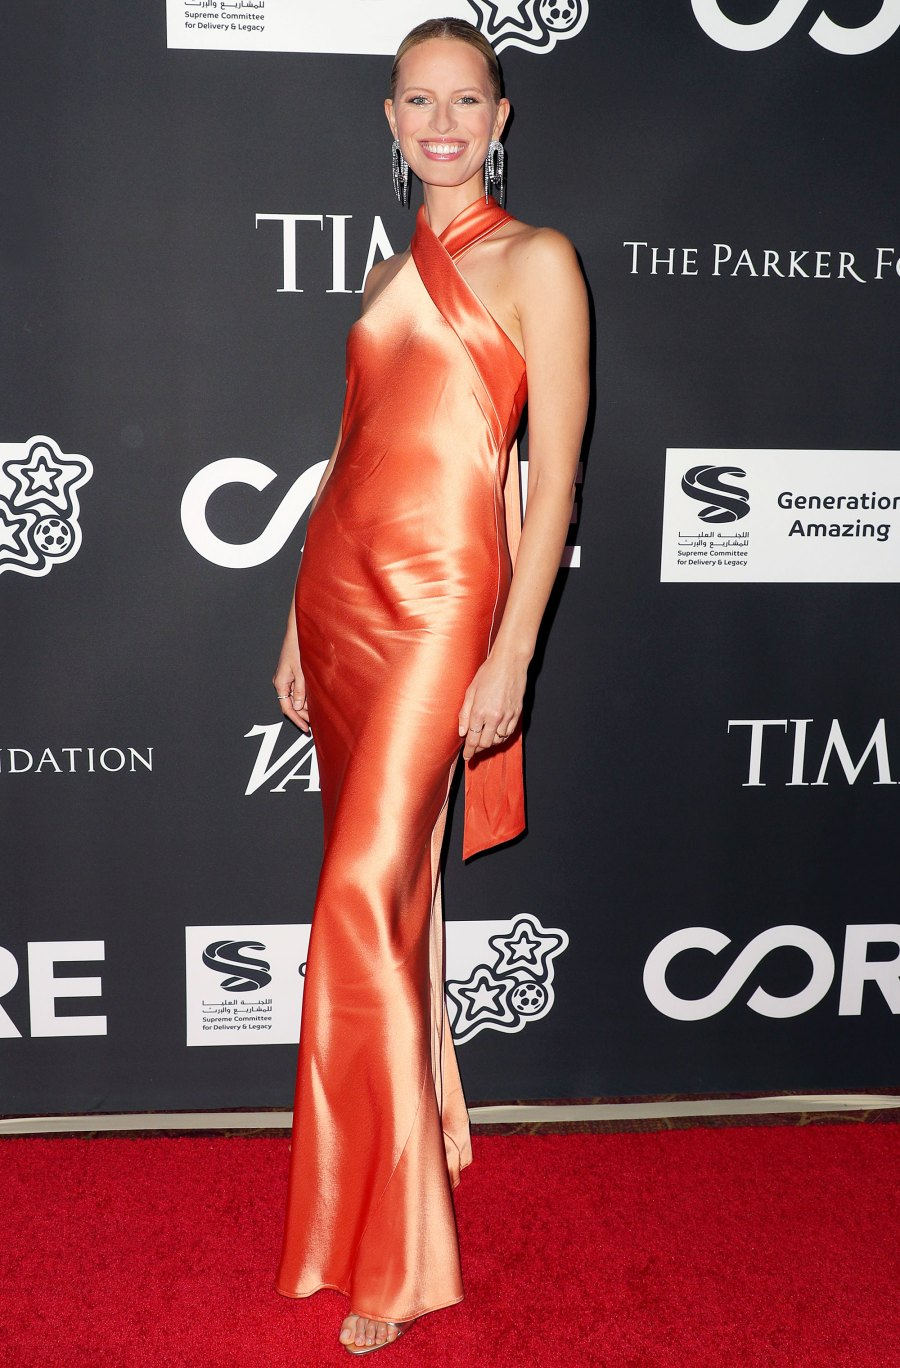 Best-Dressed Stars on the Red Carpet and Beyond